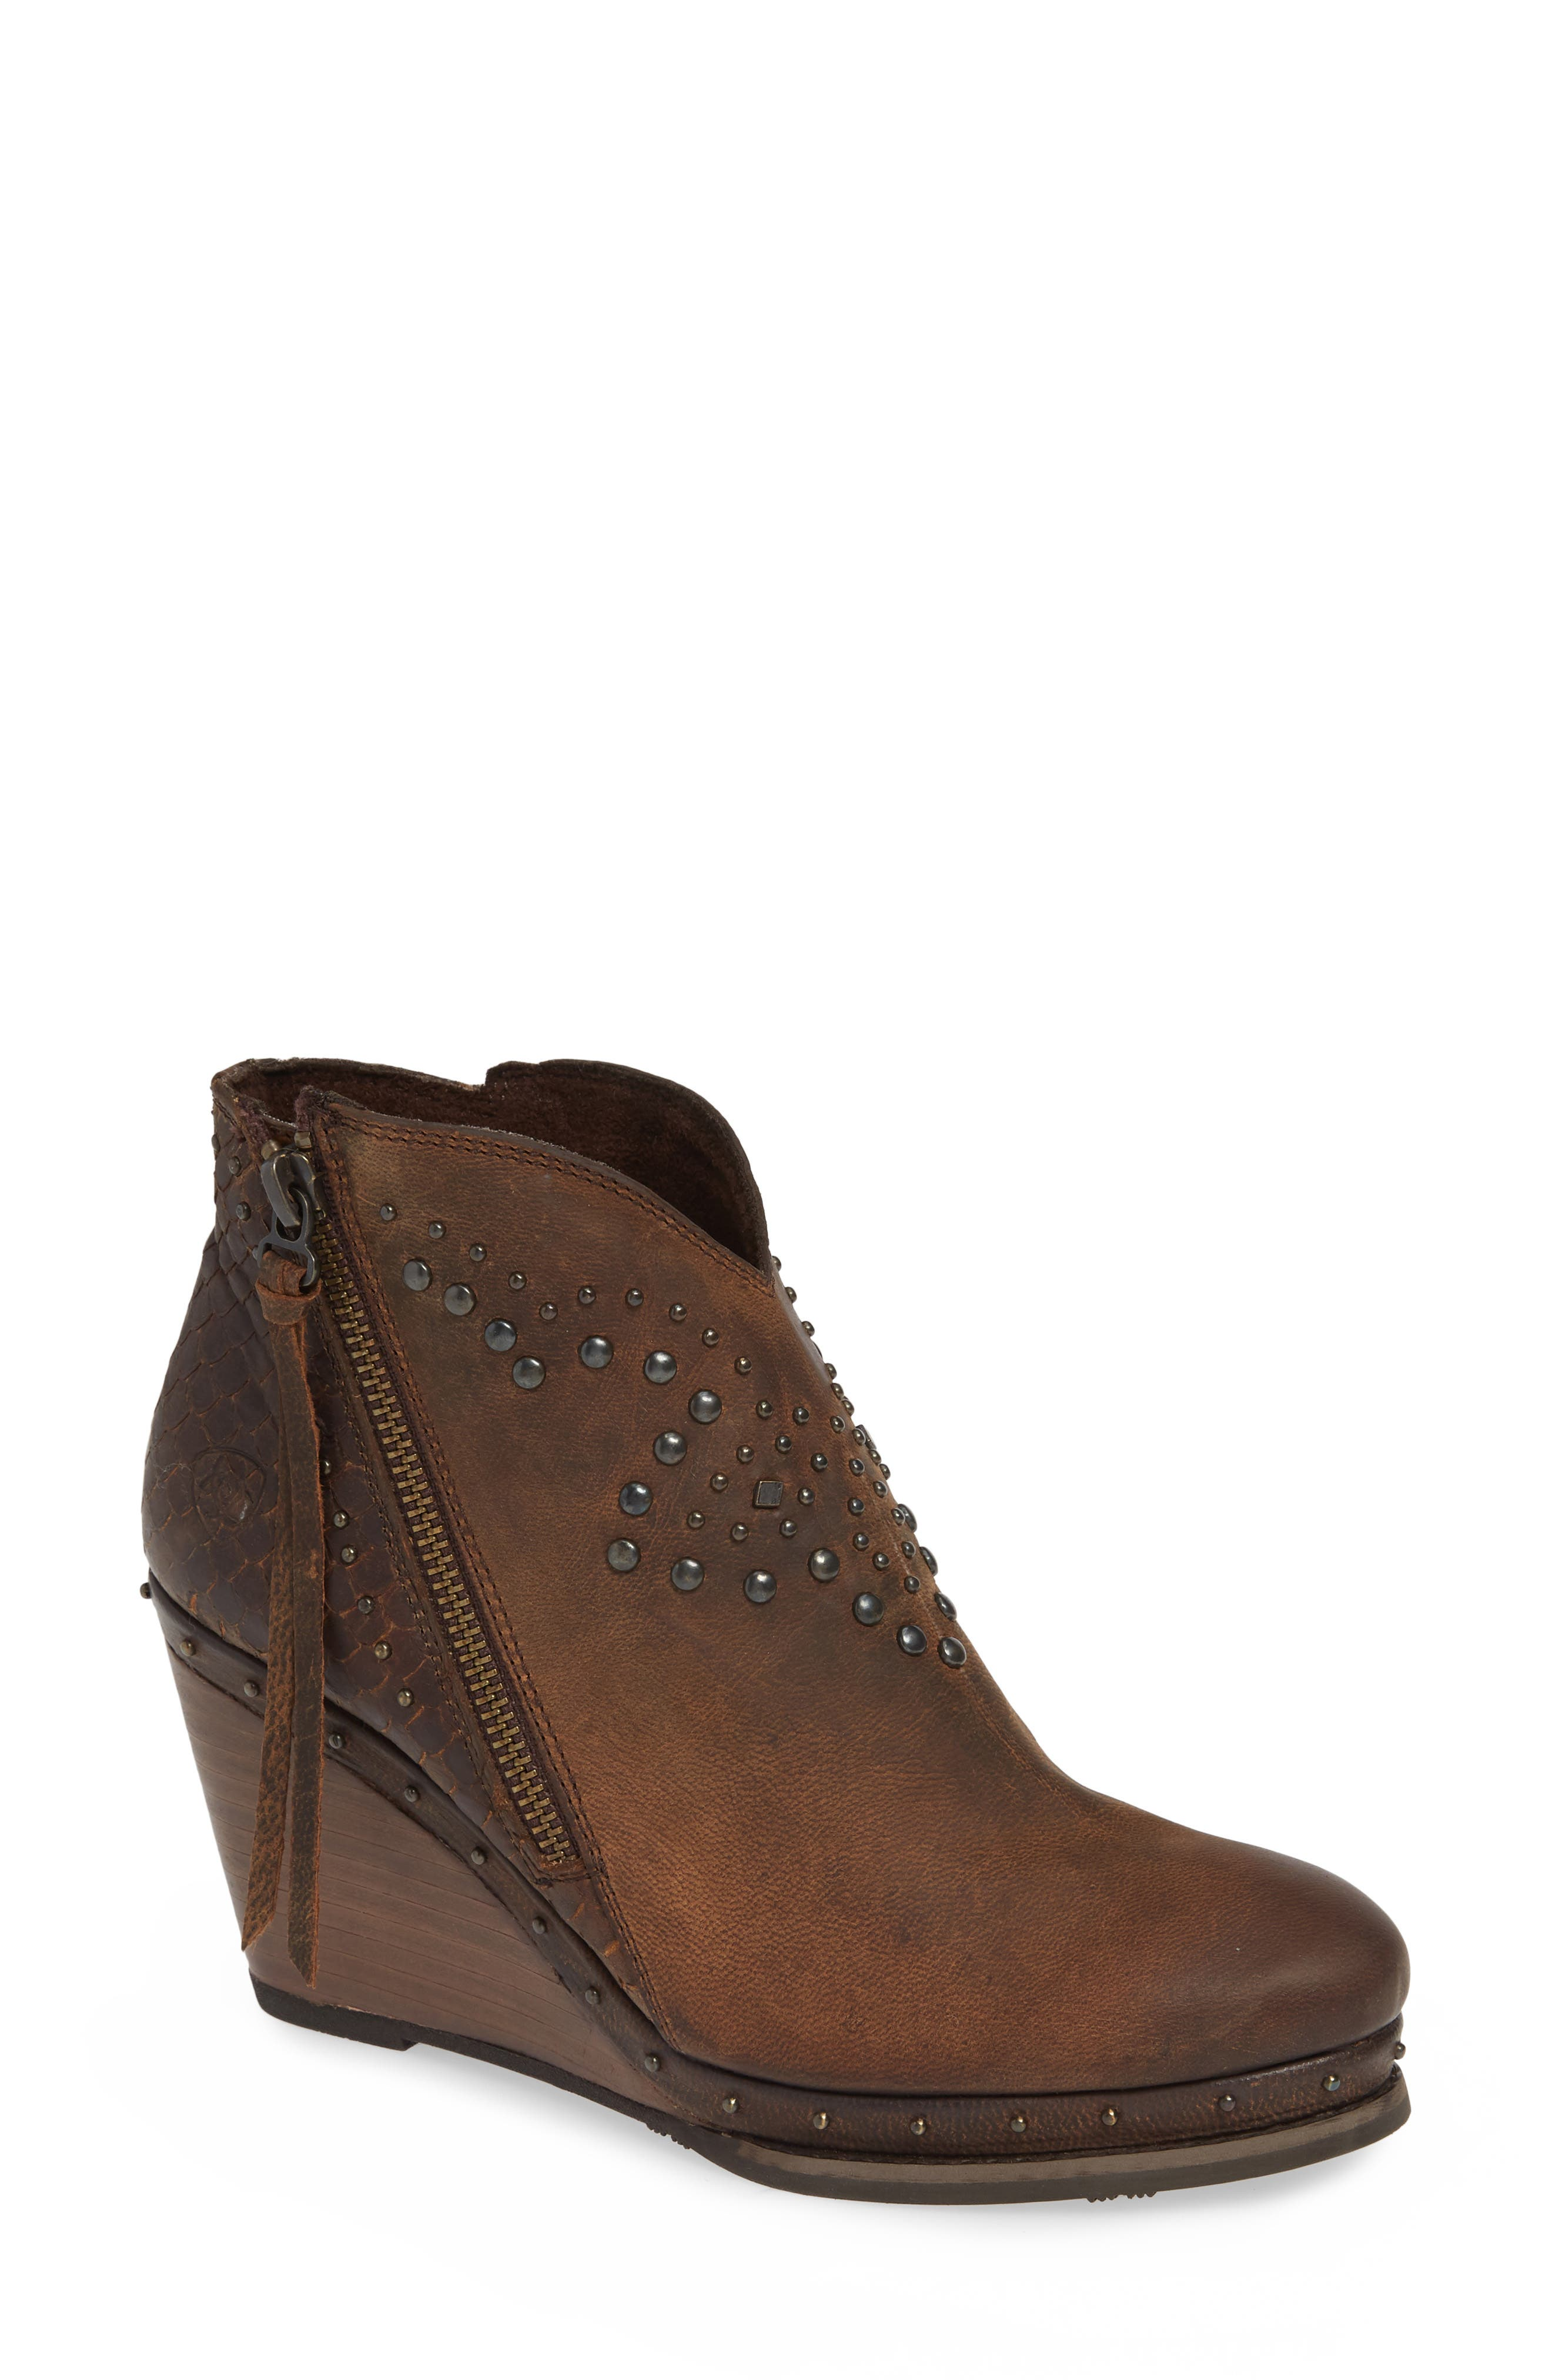 Stax Studded Wedge Bootie,                             Main thumbnail 1, color,                             RUSSET DIAMONDBACK TAN LEATHER